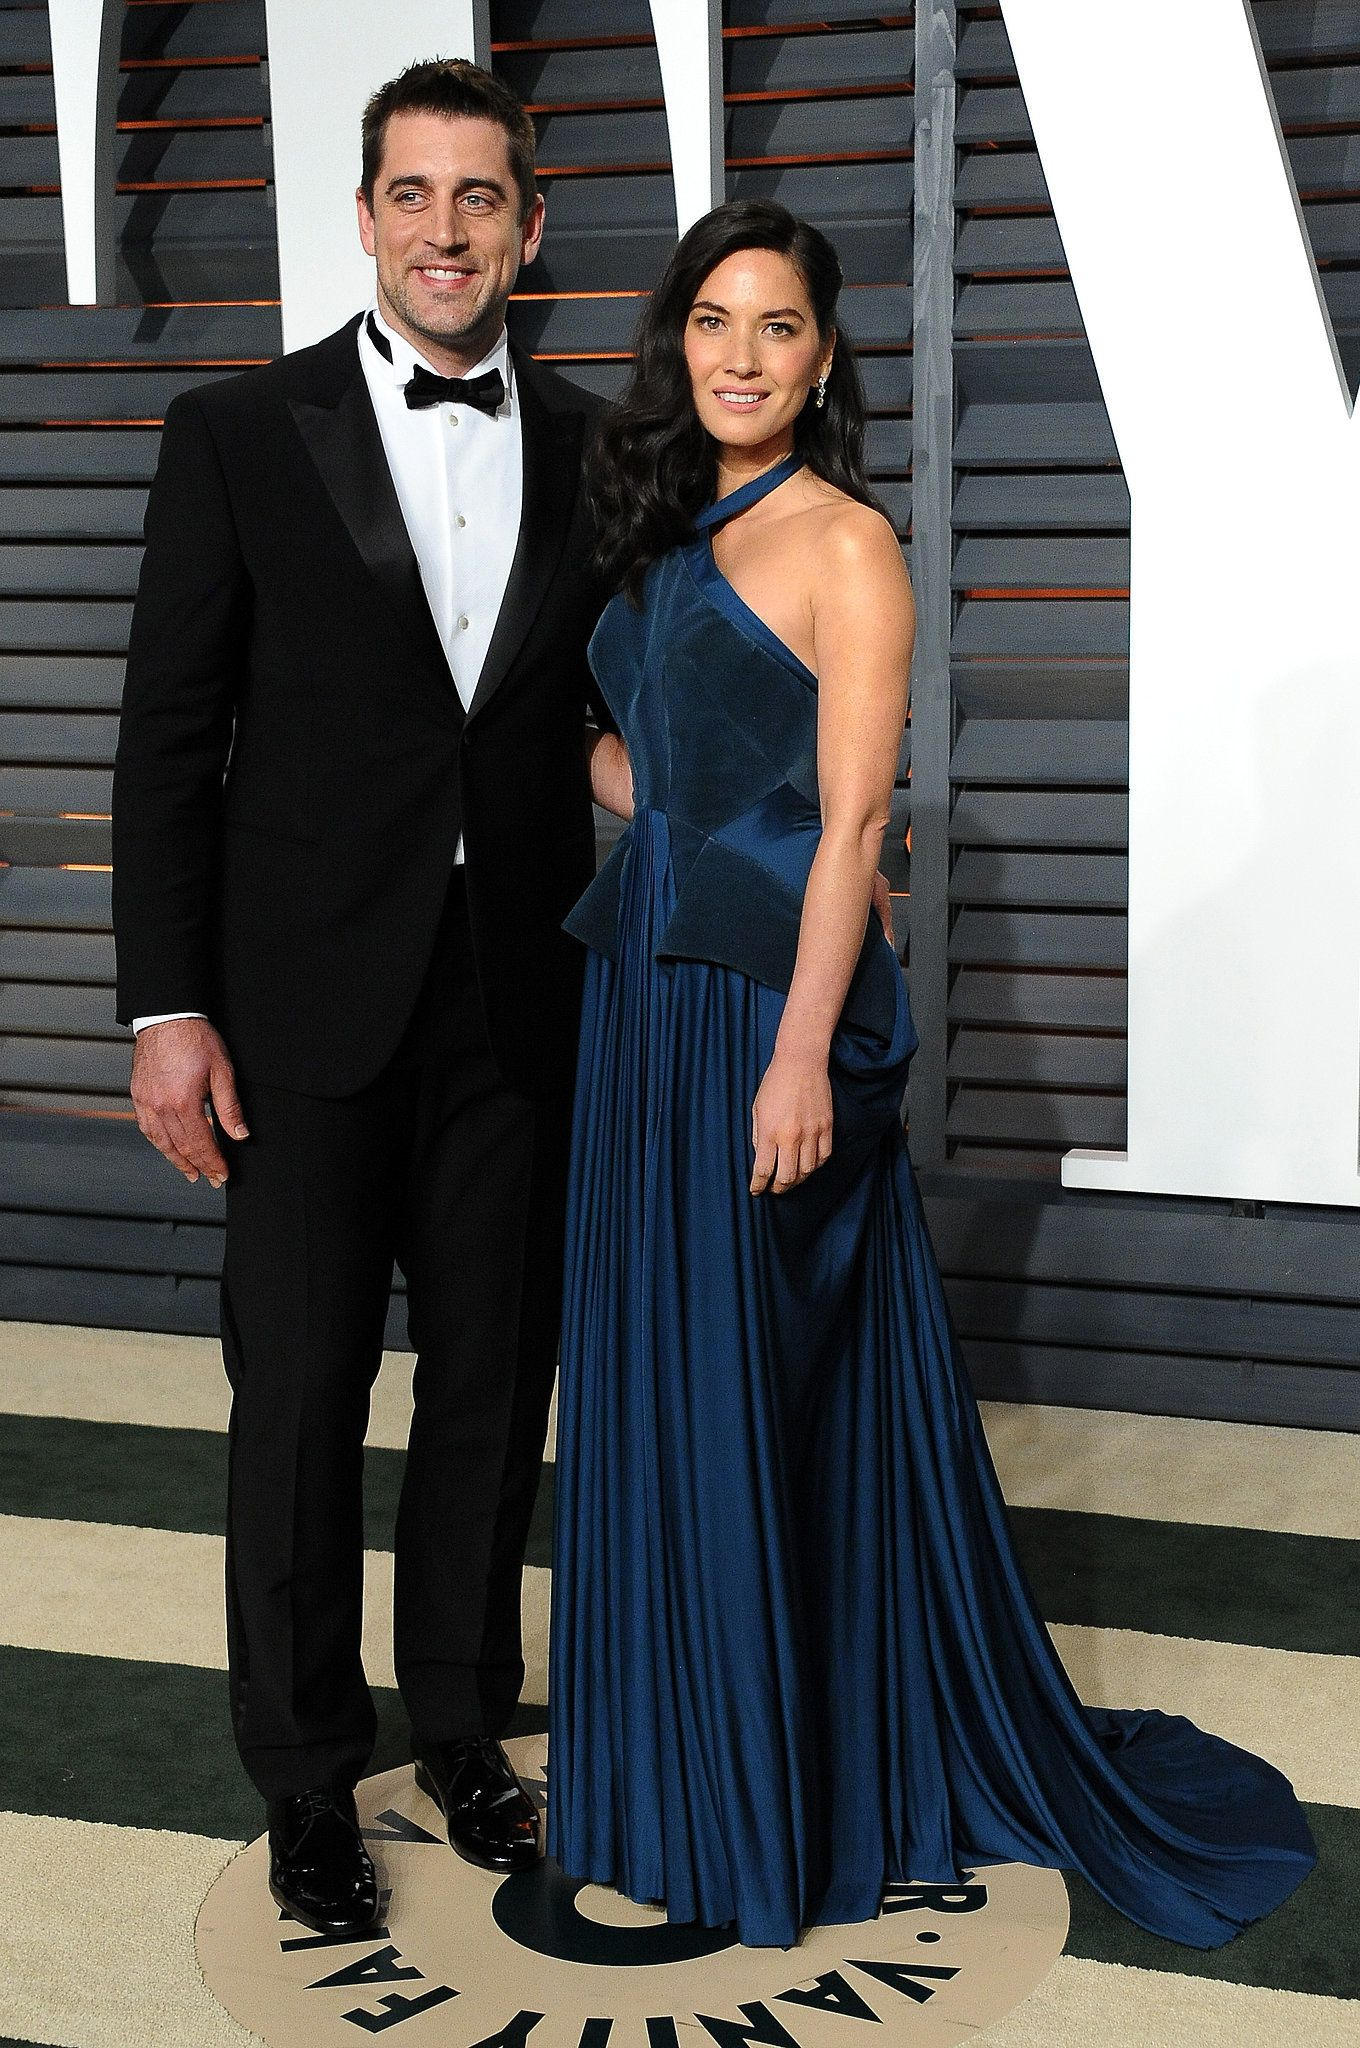 Aaron Rodgers And Olivia Munn Olivia Munn Party Looks Celebrity Style Red Carpet